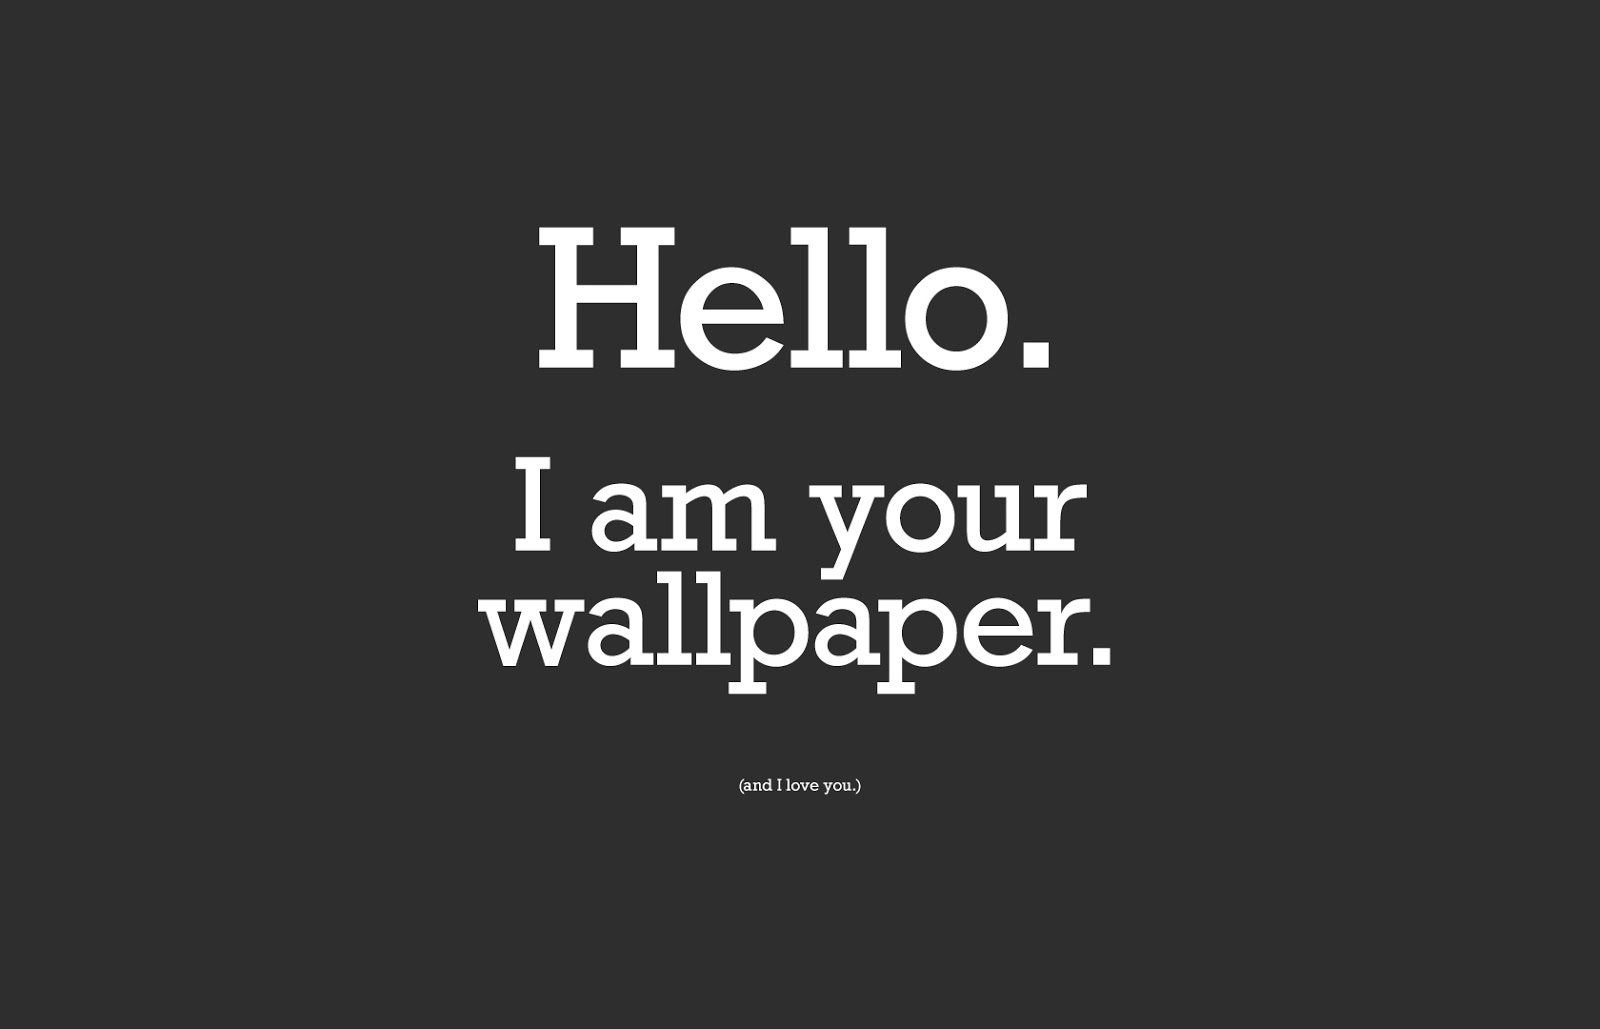 Wallpaper With Funny Quotes On Love : Funny Weird Quotes And Sayings 27 Desktop Background - Funnypicture ...